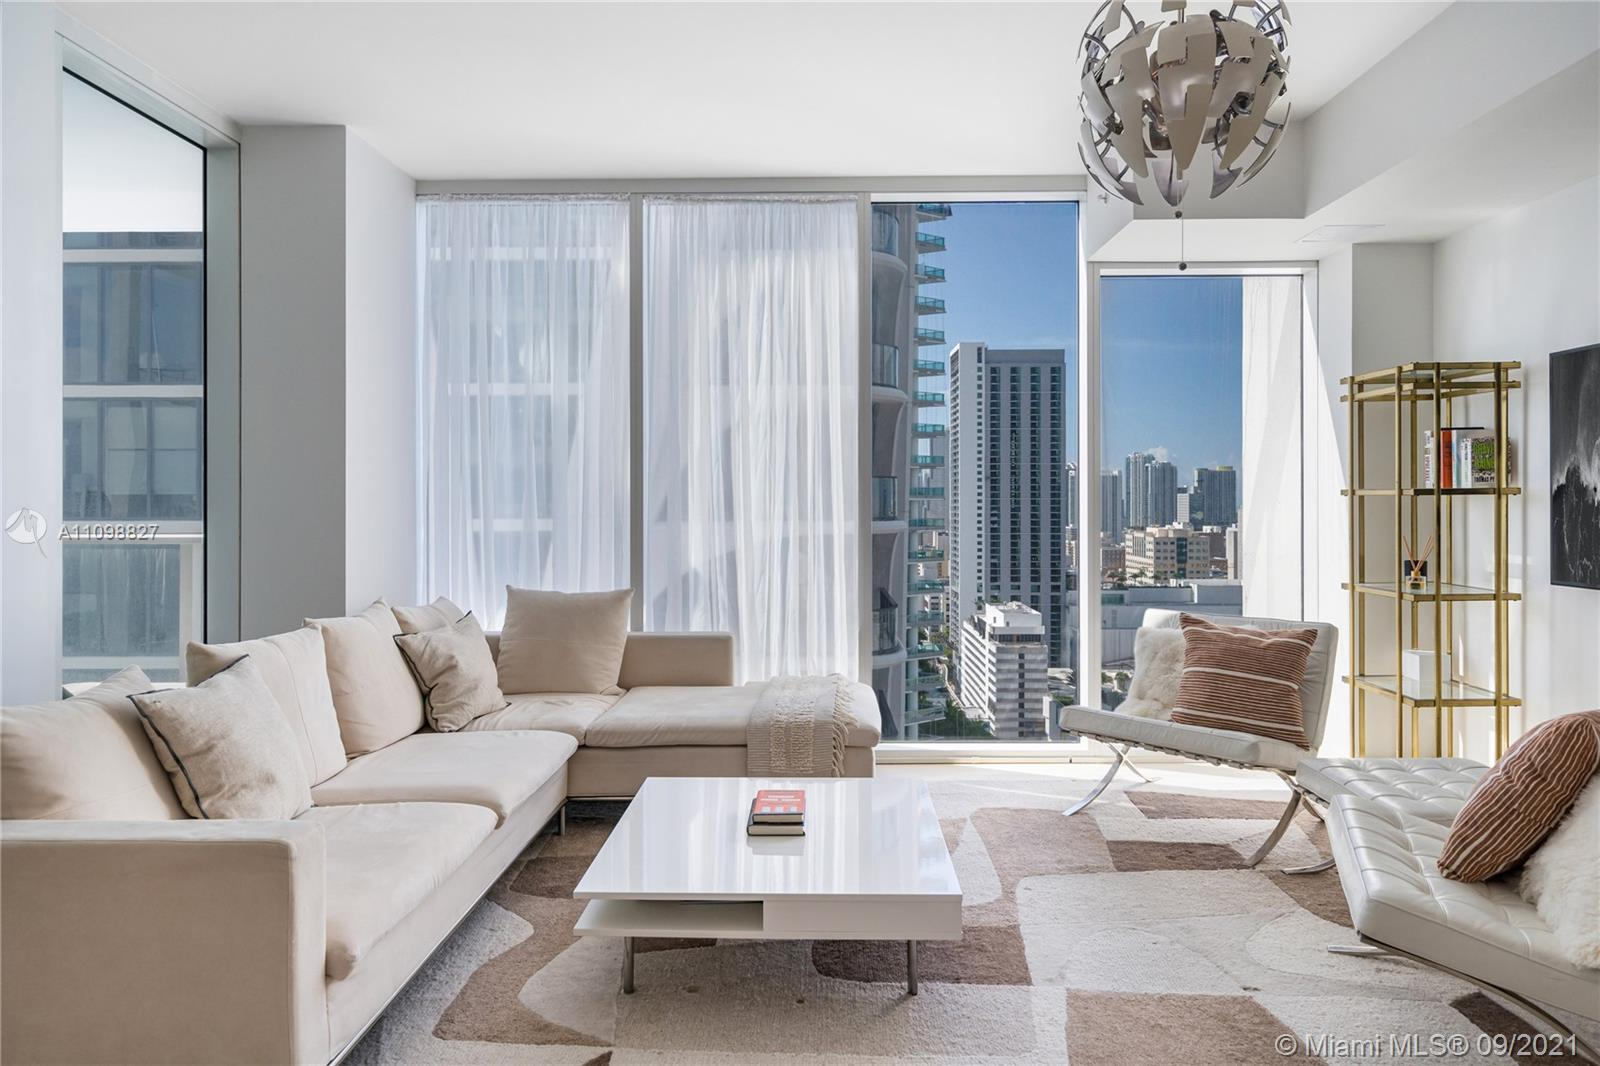 One bedroom and one-and-a-half bathroom residence at the coveted Ten Museum Park. 8' ceilings and a